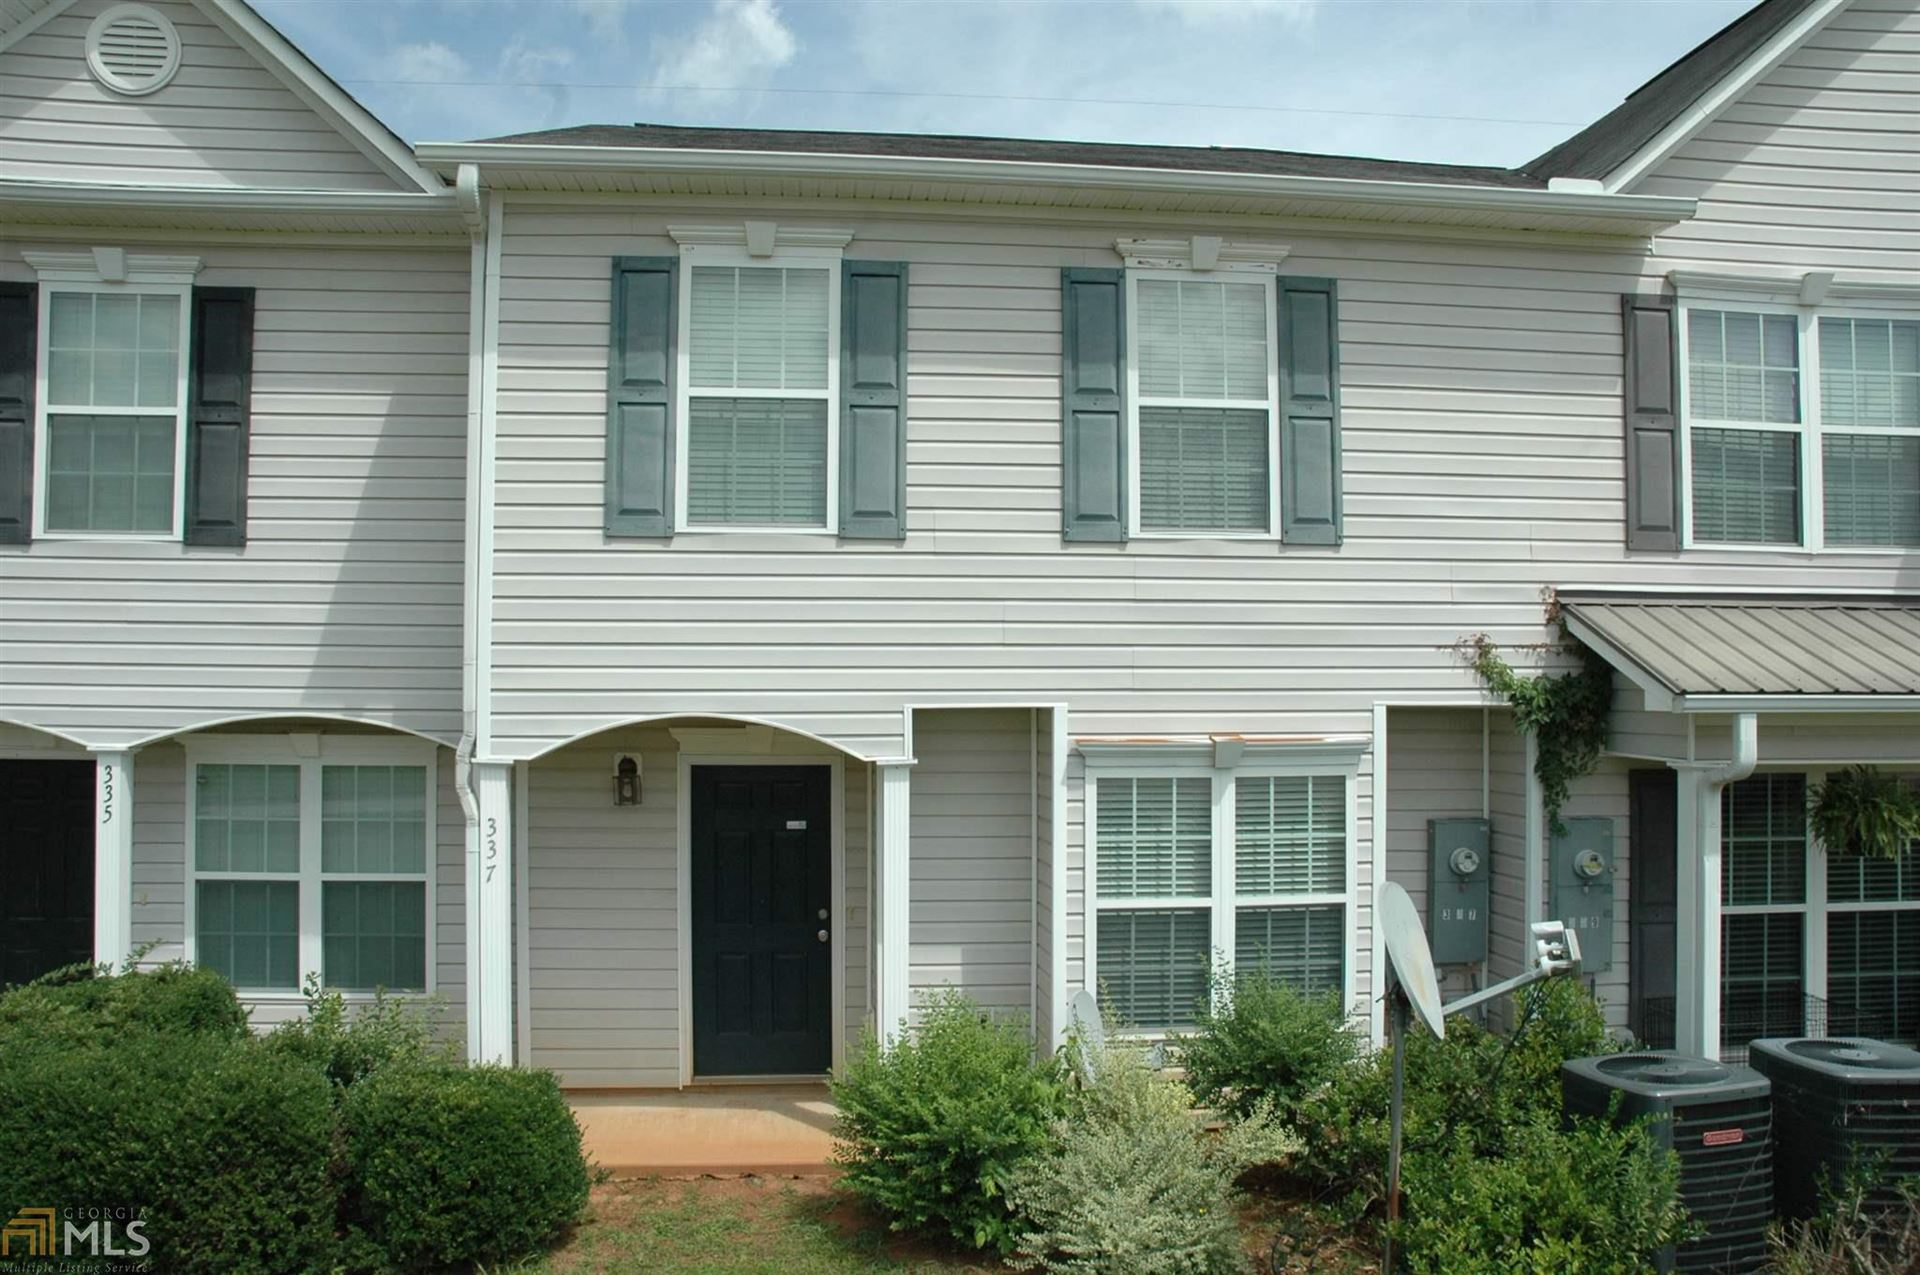 337 Baileys Way, LaGrange, GA 30241 - #: 8832455